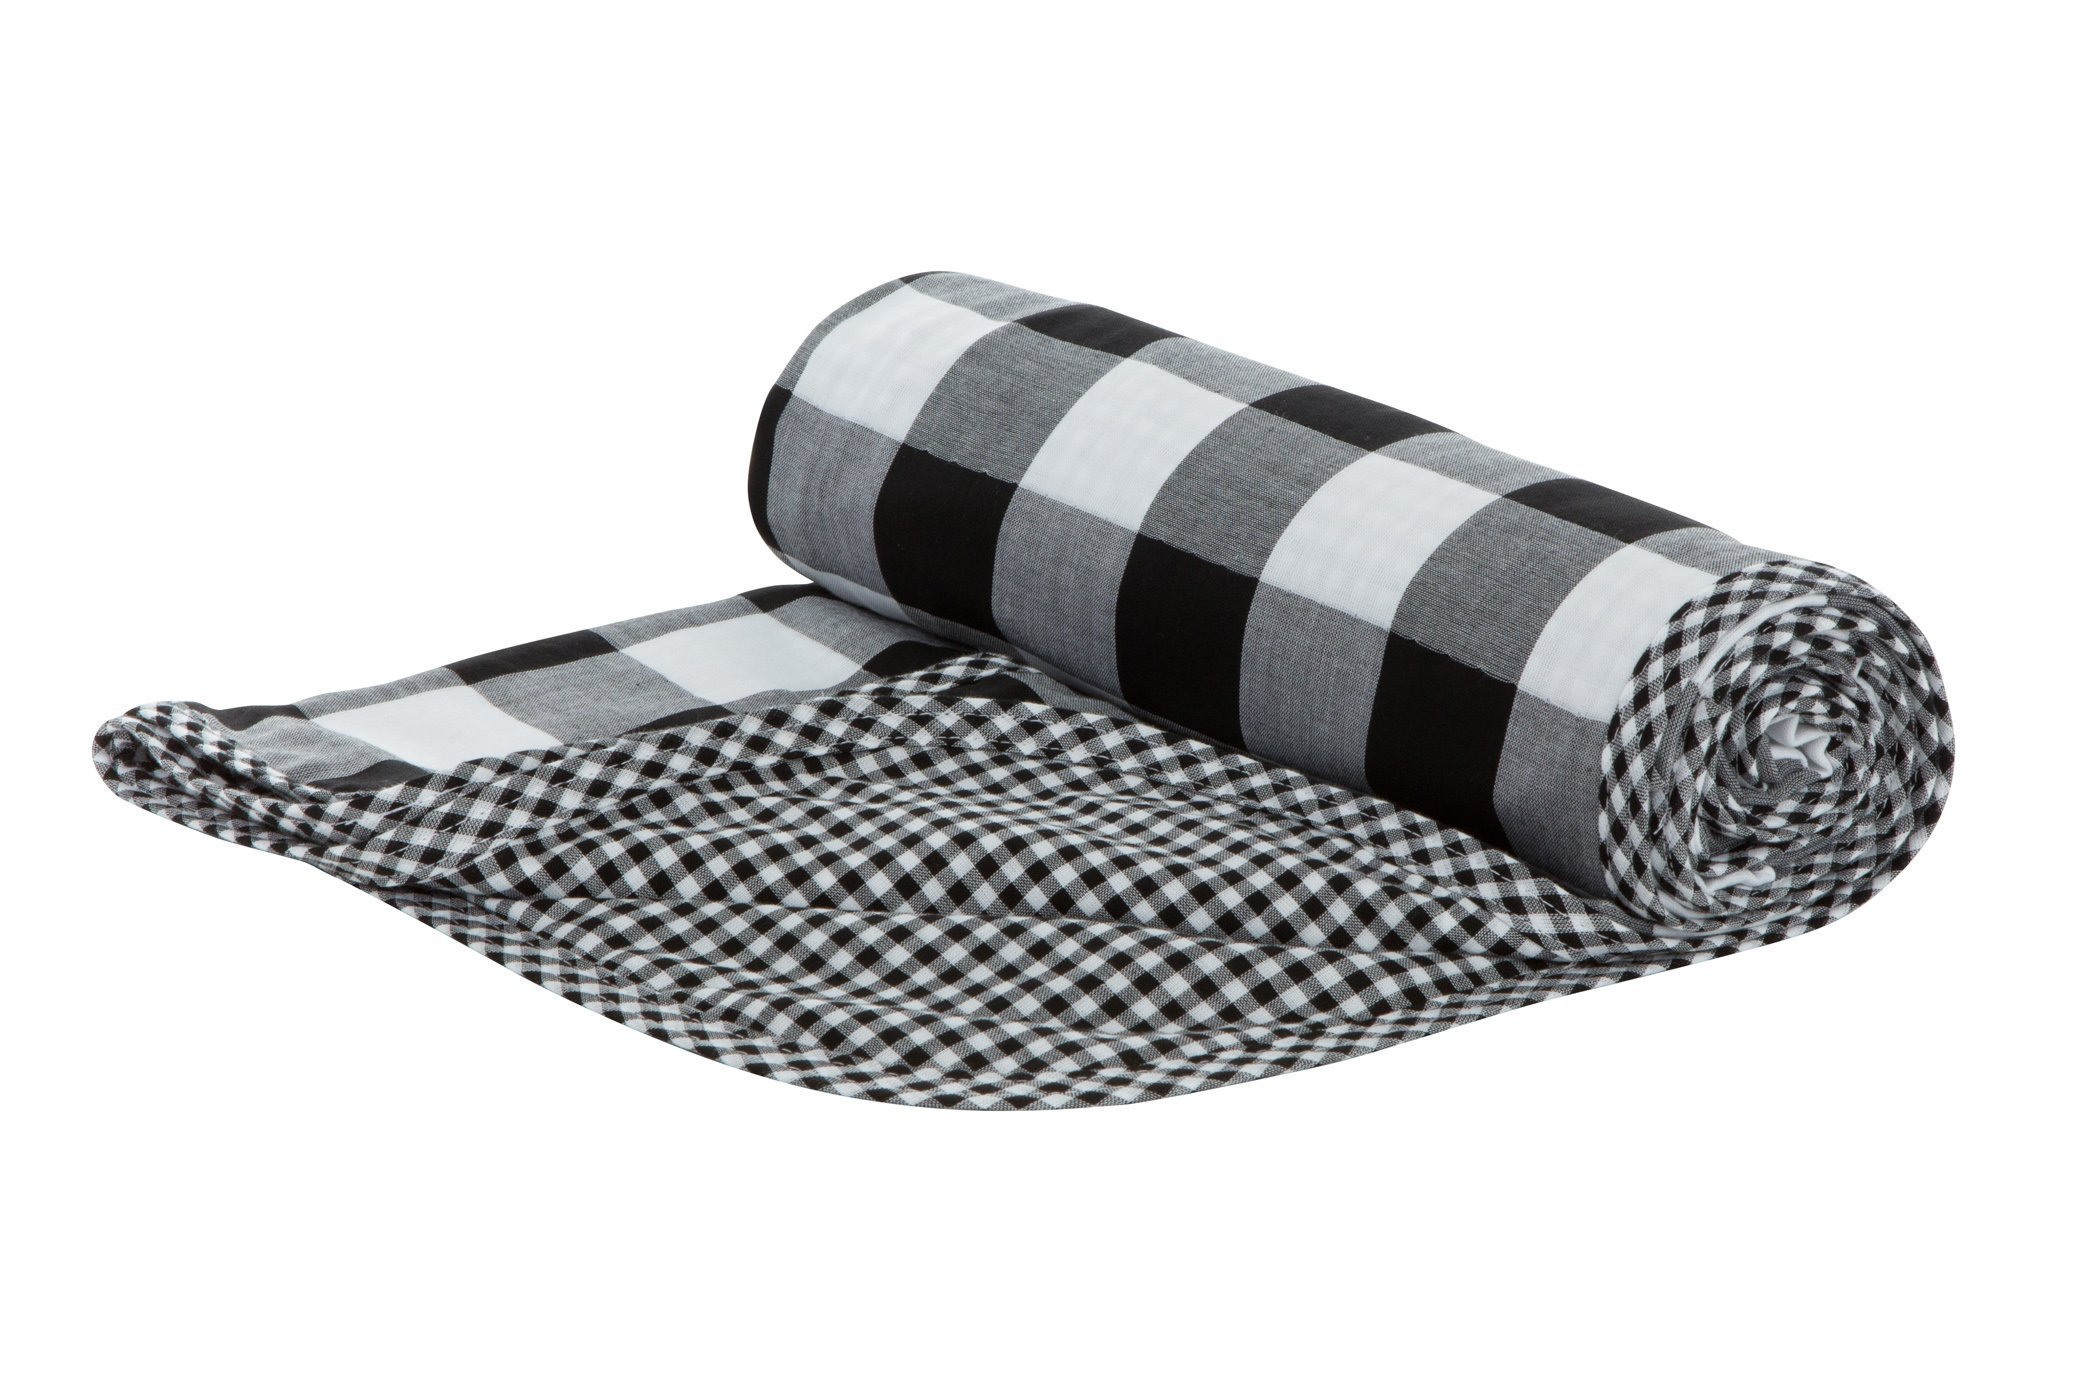 Henry and Bros. Large Double Layer Toddler Blanket, Girl Nap Blanket/Boy Nap Blanket, Light Blanket For Kids, Kids Quilt Patterns Made Of 100% Cotton (Black and White Buffalo Check)